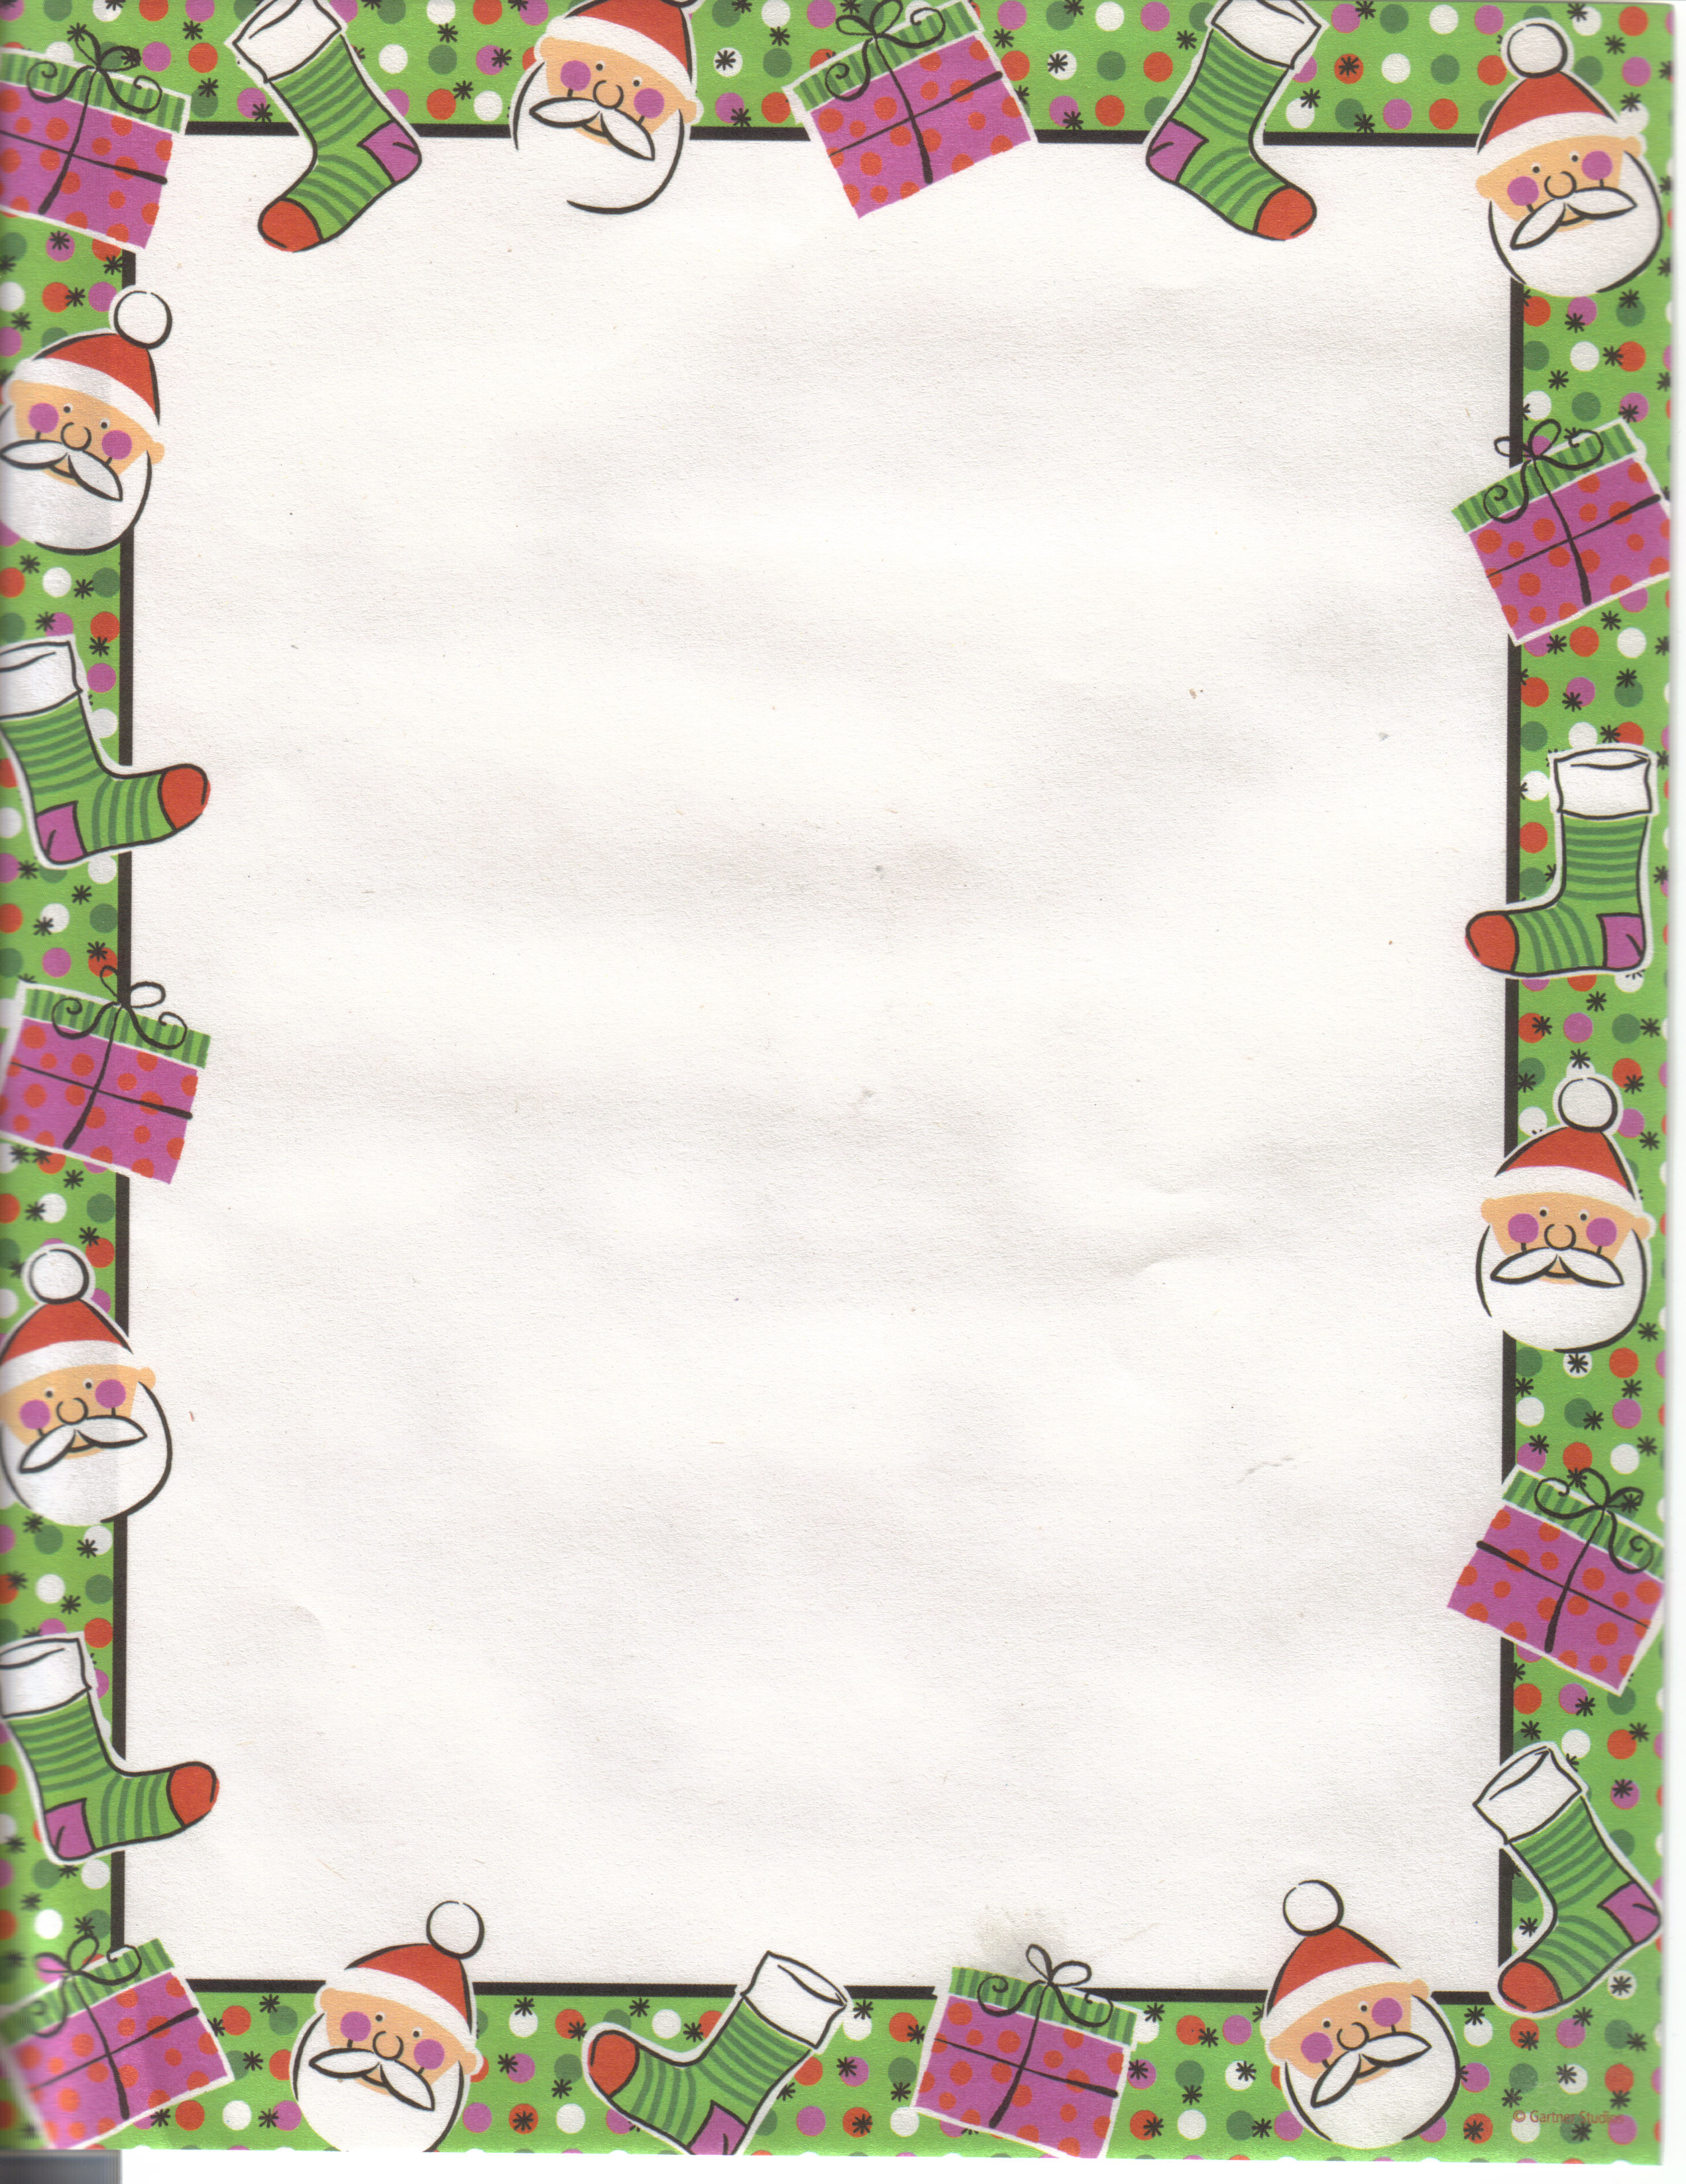 search results for santa letter background calendar 2015 search results for letter from santa background paper 126